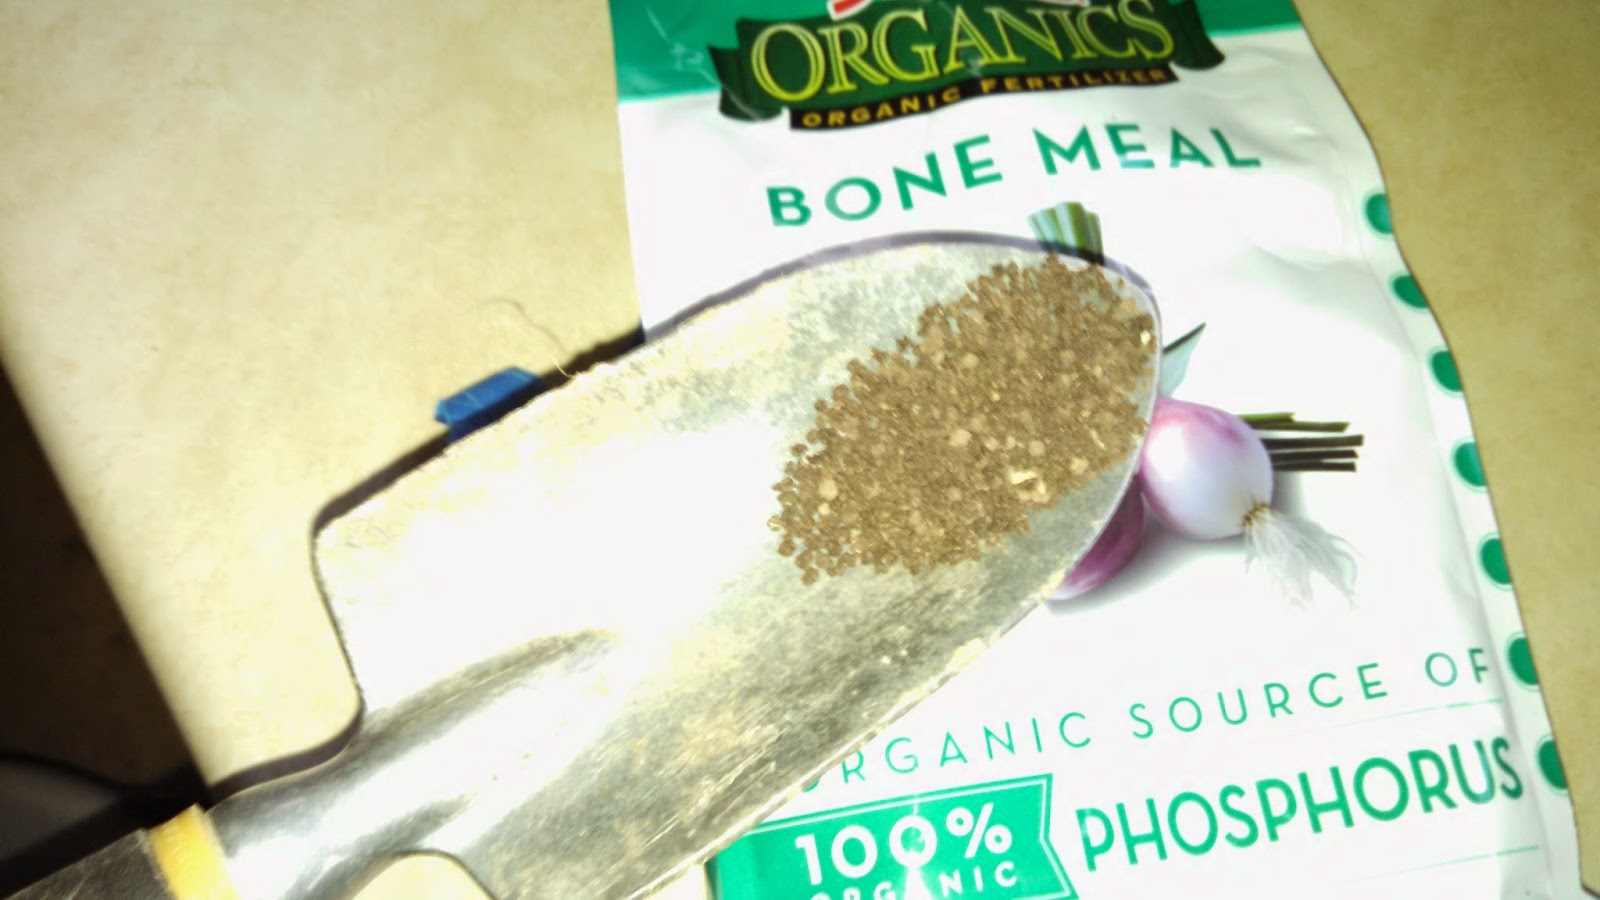 Organic Bone Meal- Adds Phosphorus